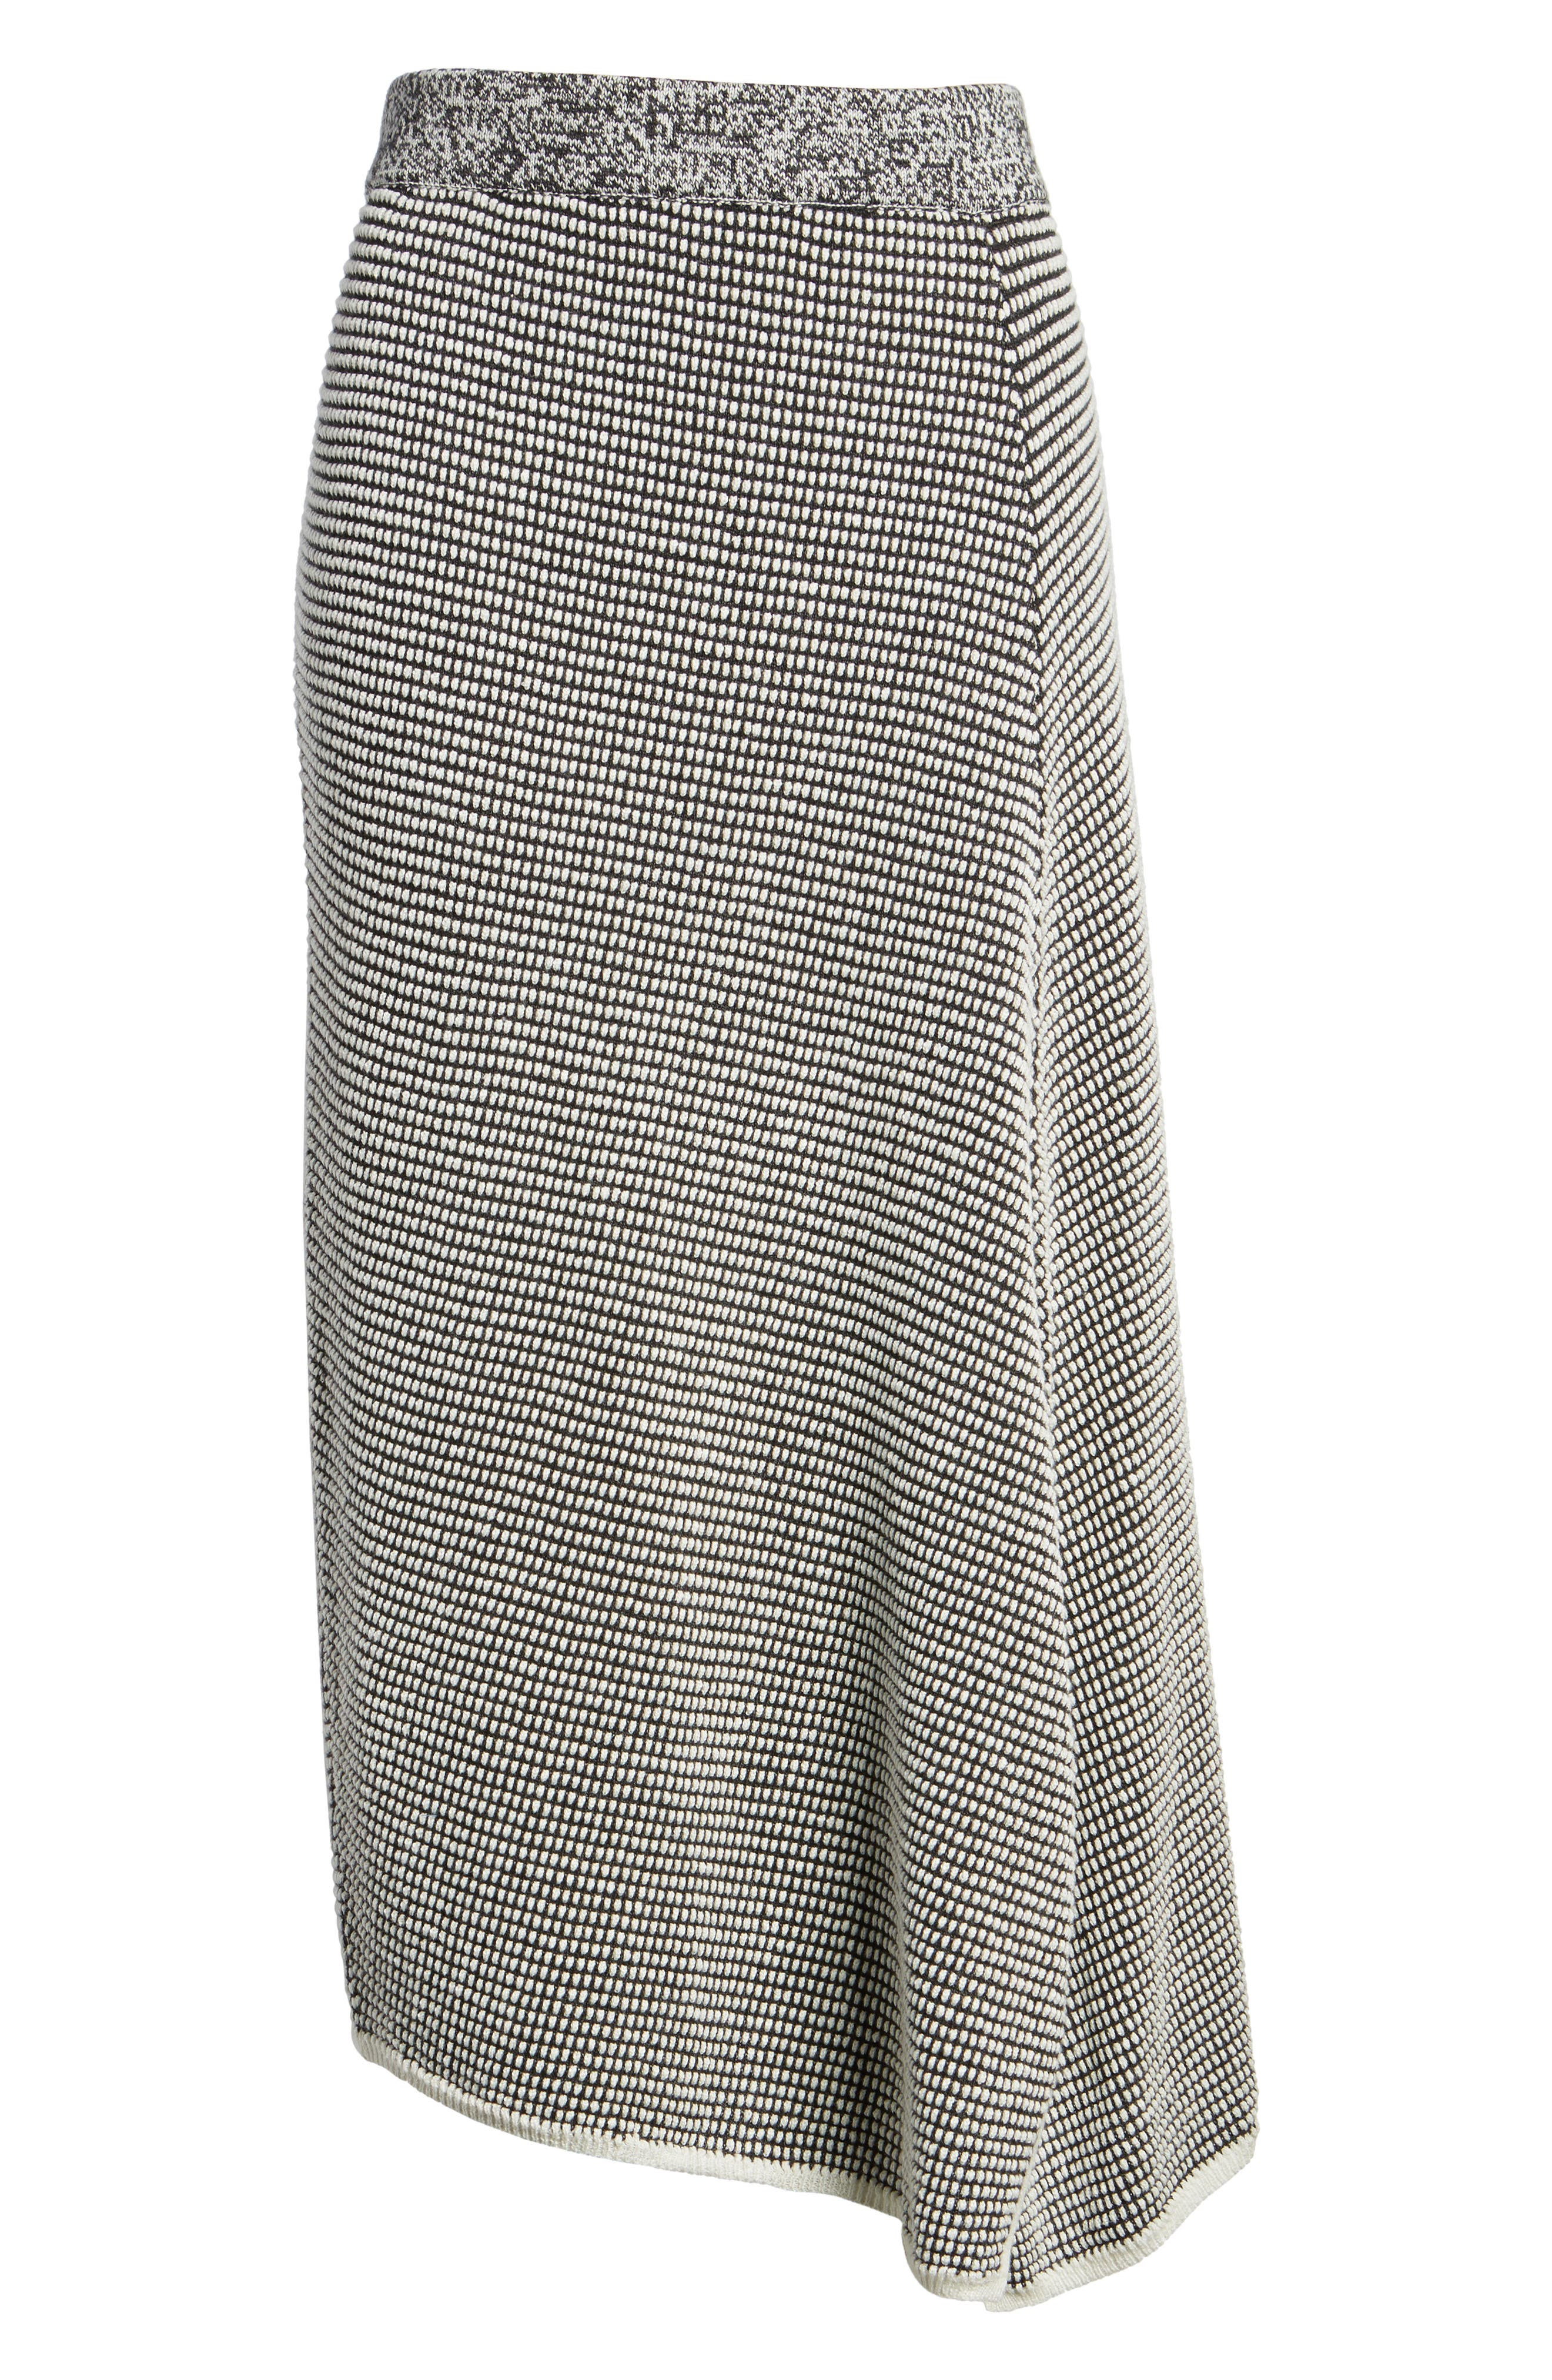 Frosted Fall Knit Skirt,                             Alternate thumbnail 6, color,